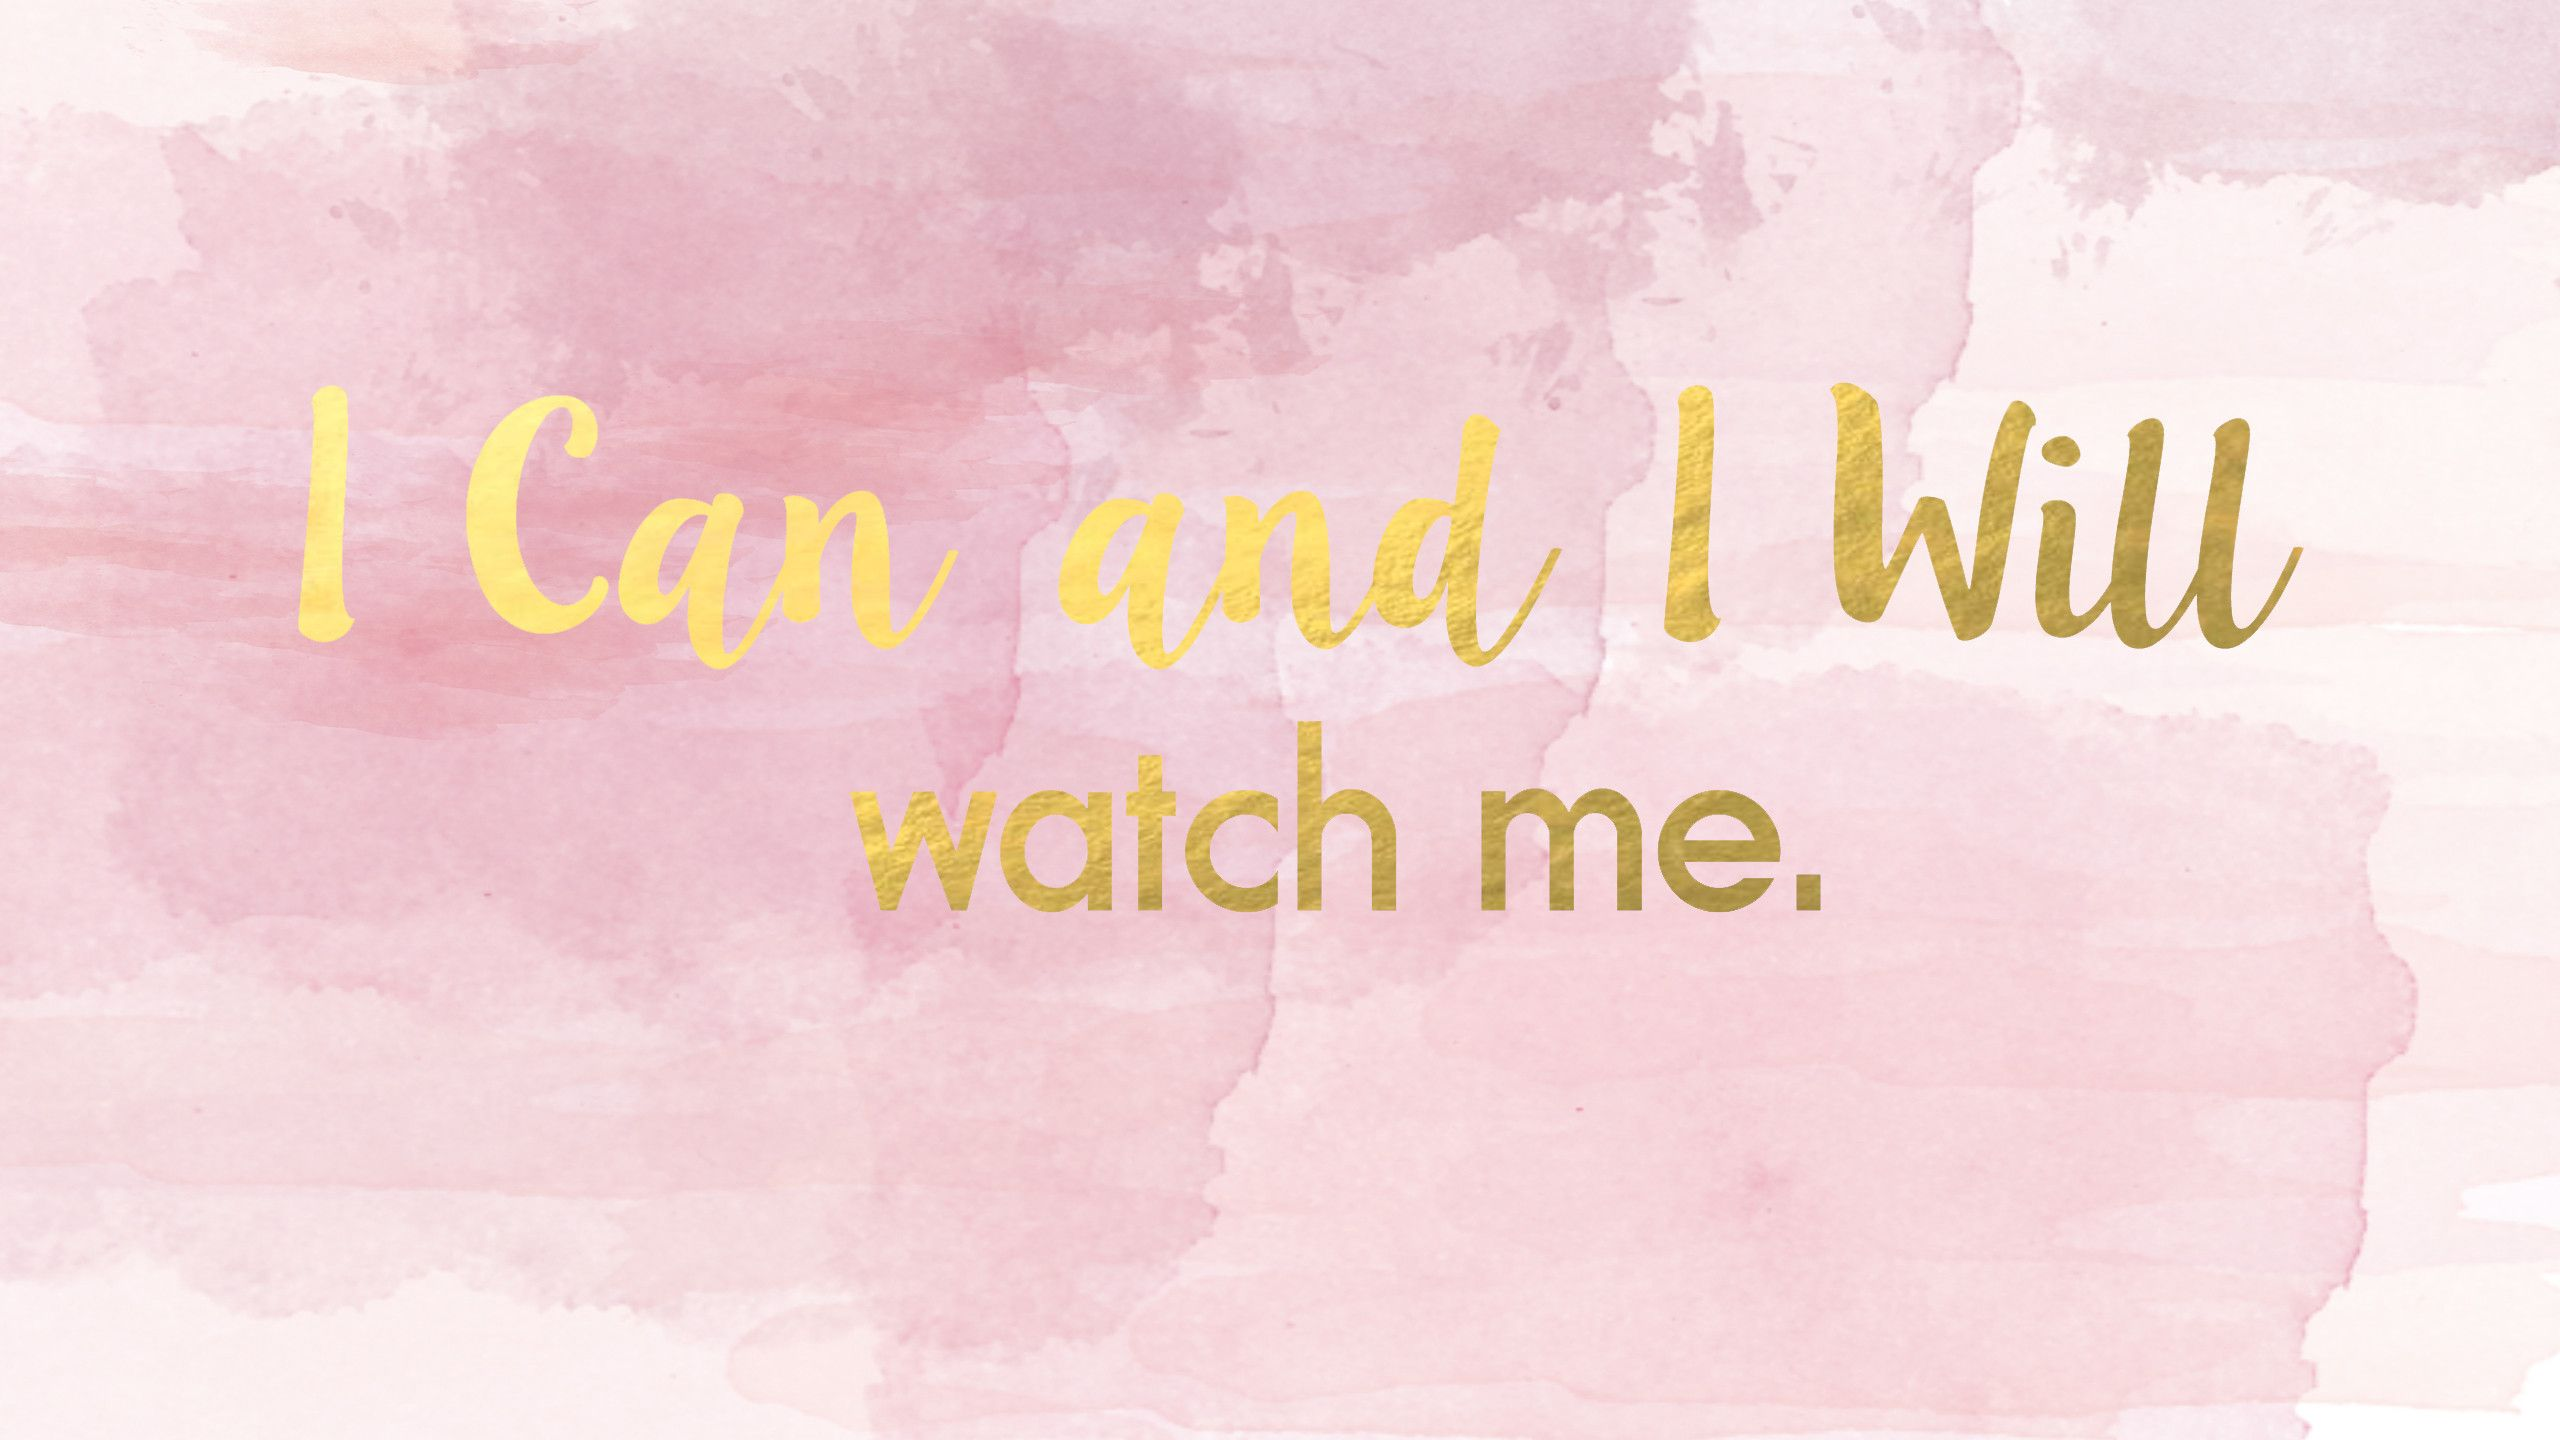 Pin By Nana On Pink Gold Pink Wallpaper Desktop Laptop Wallpaper Mac Wallpaper Desktop